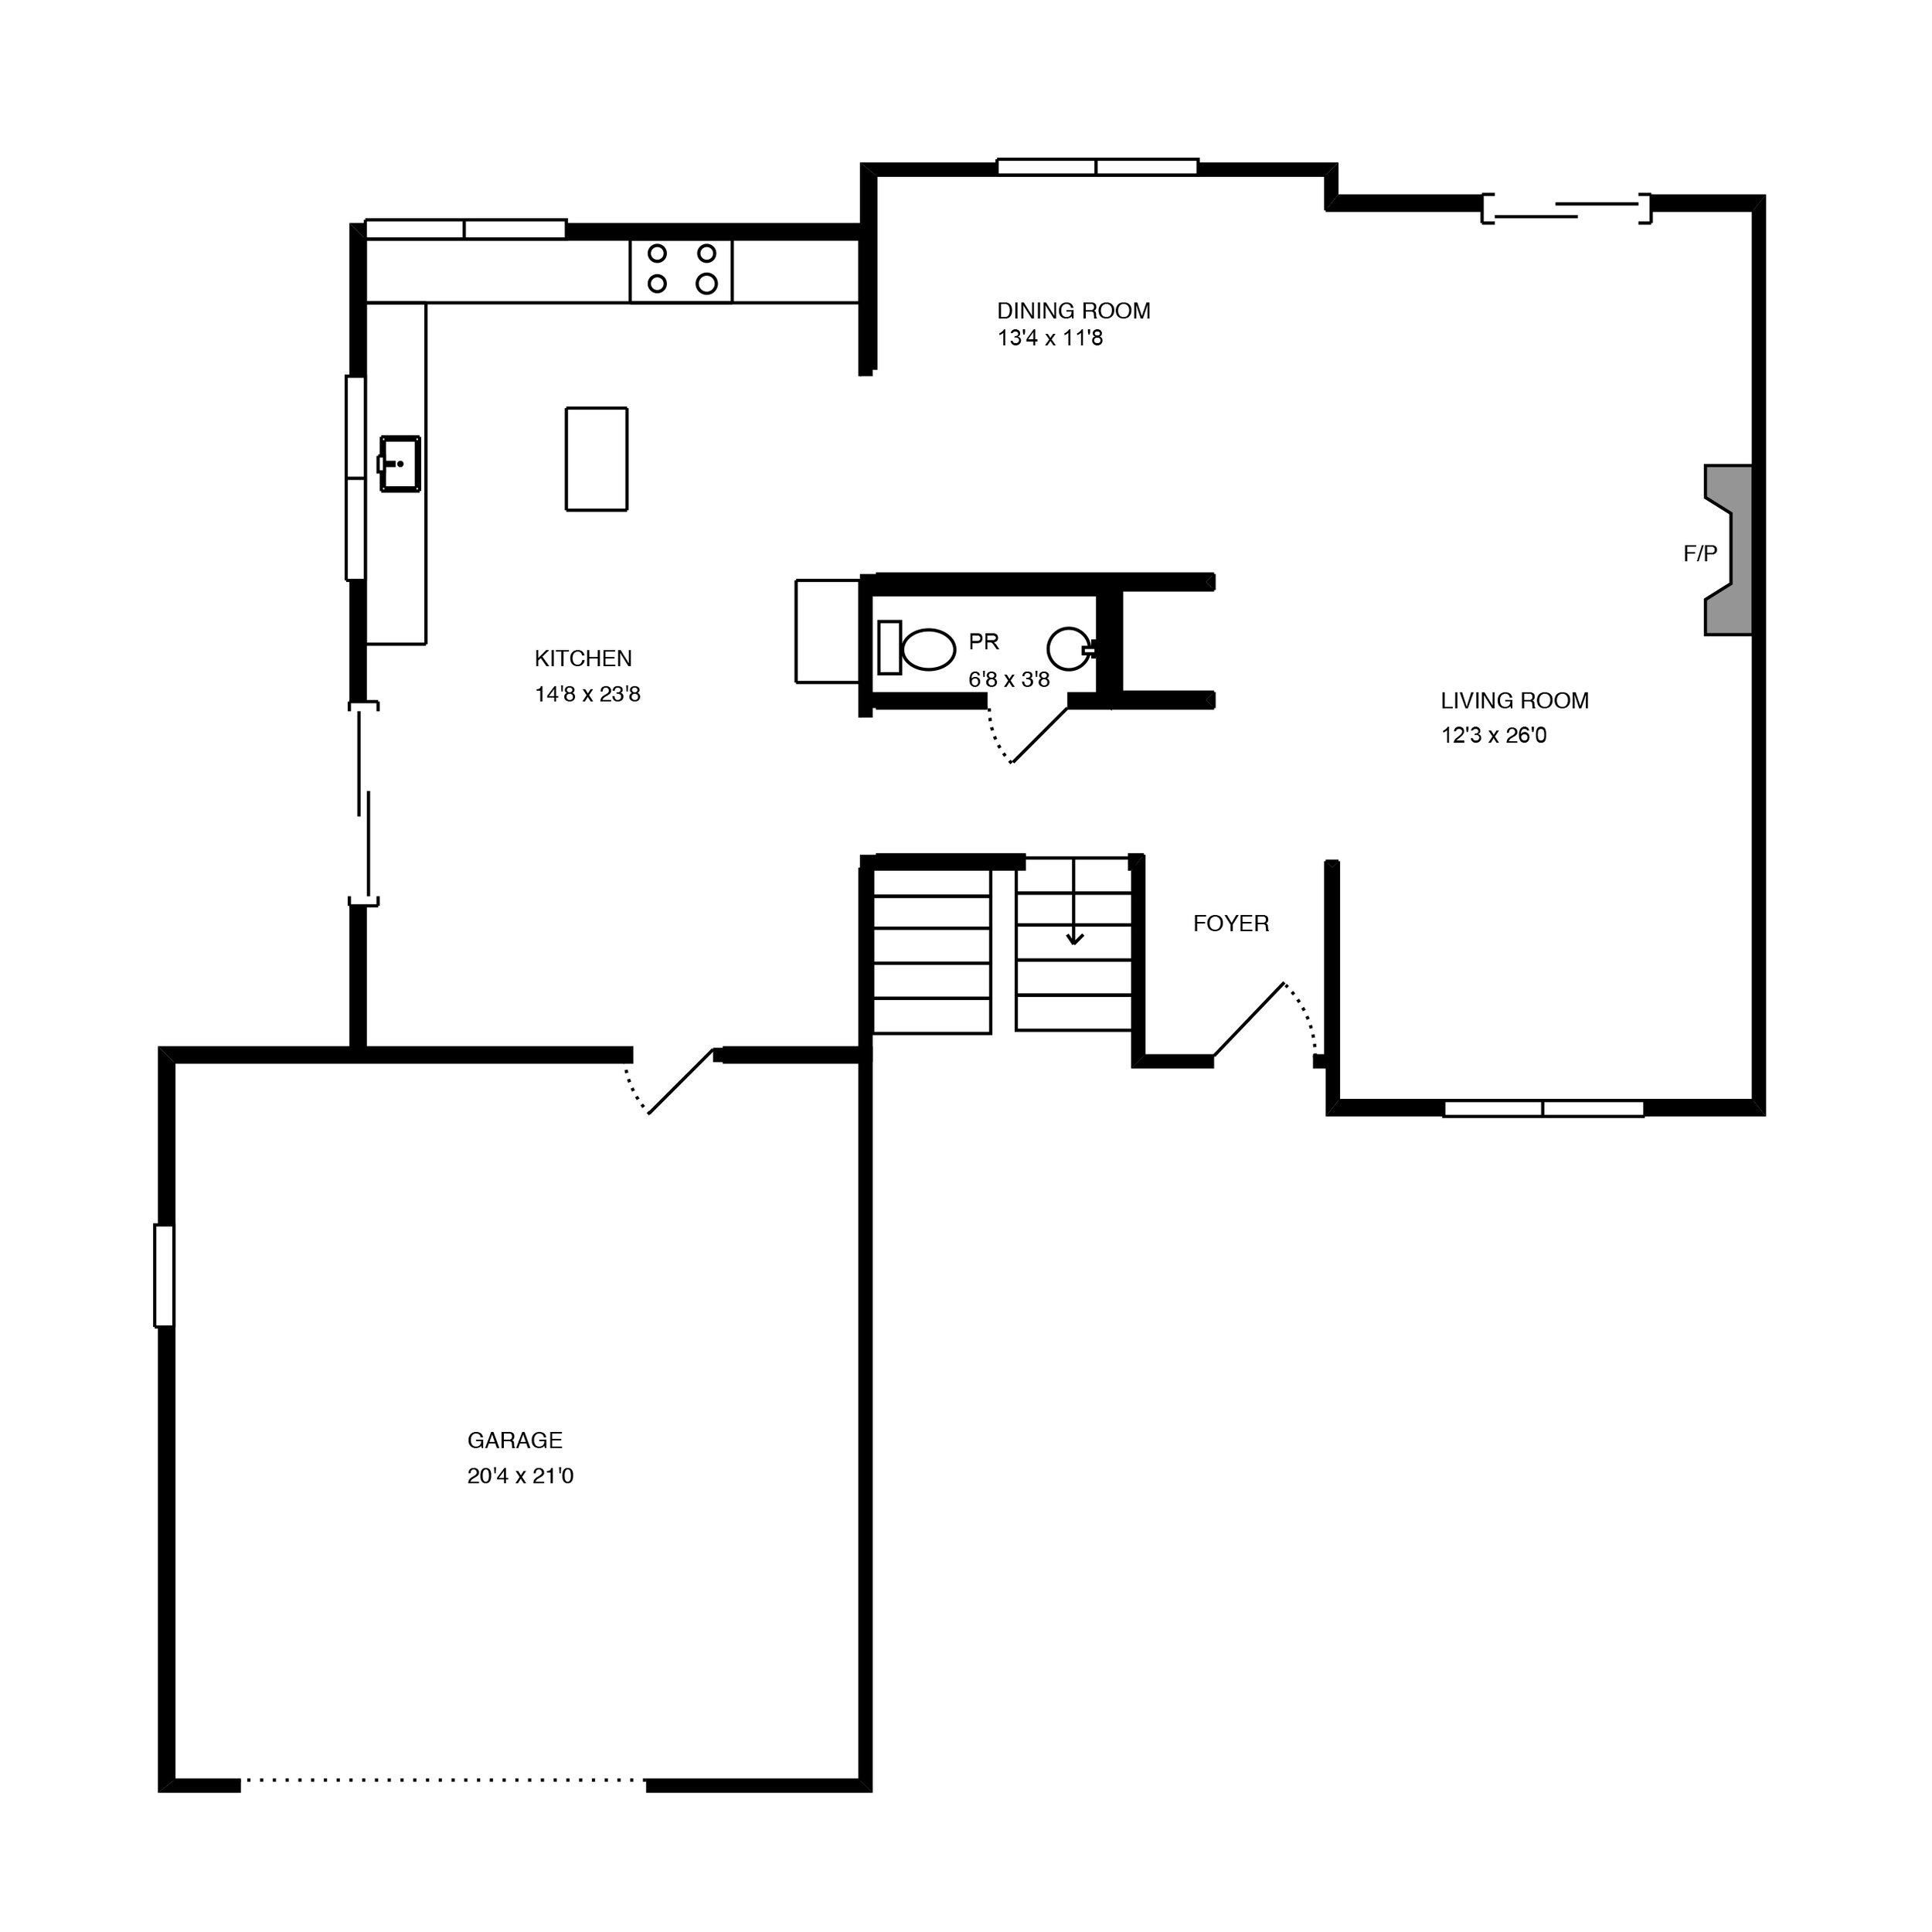 the floor plan -